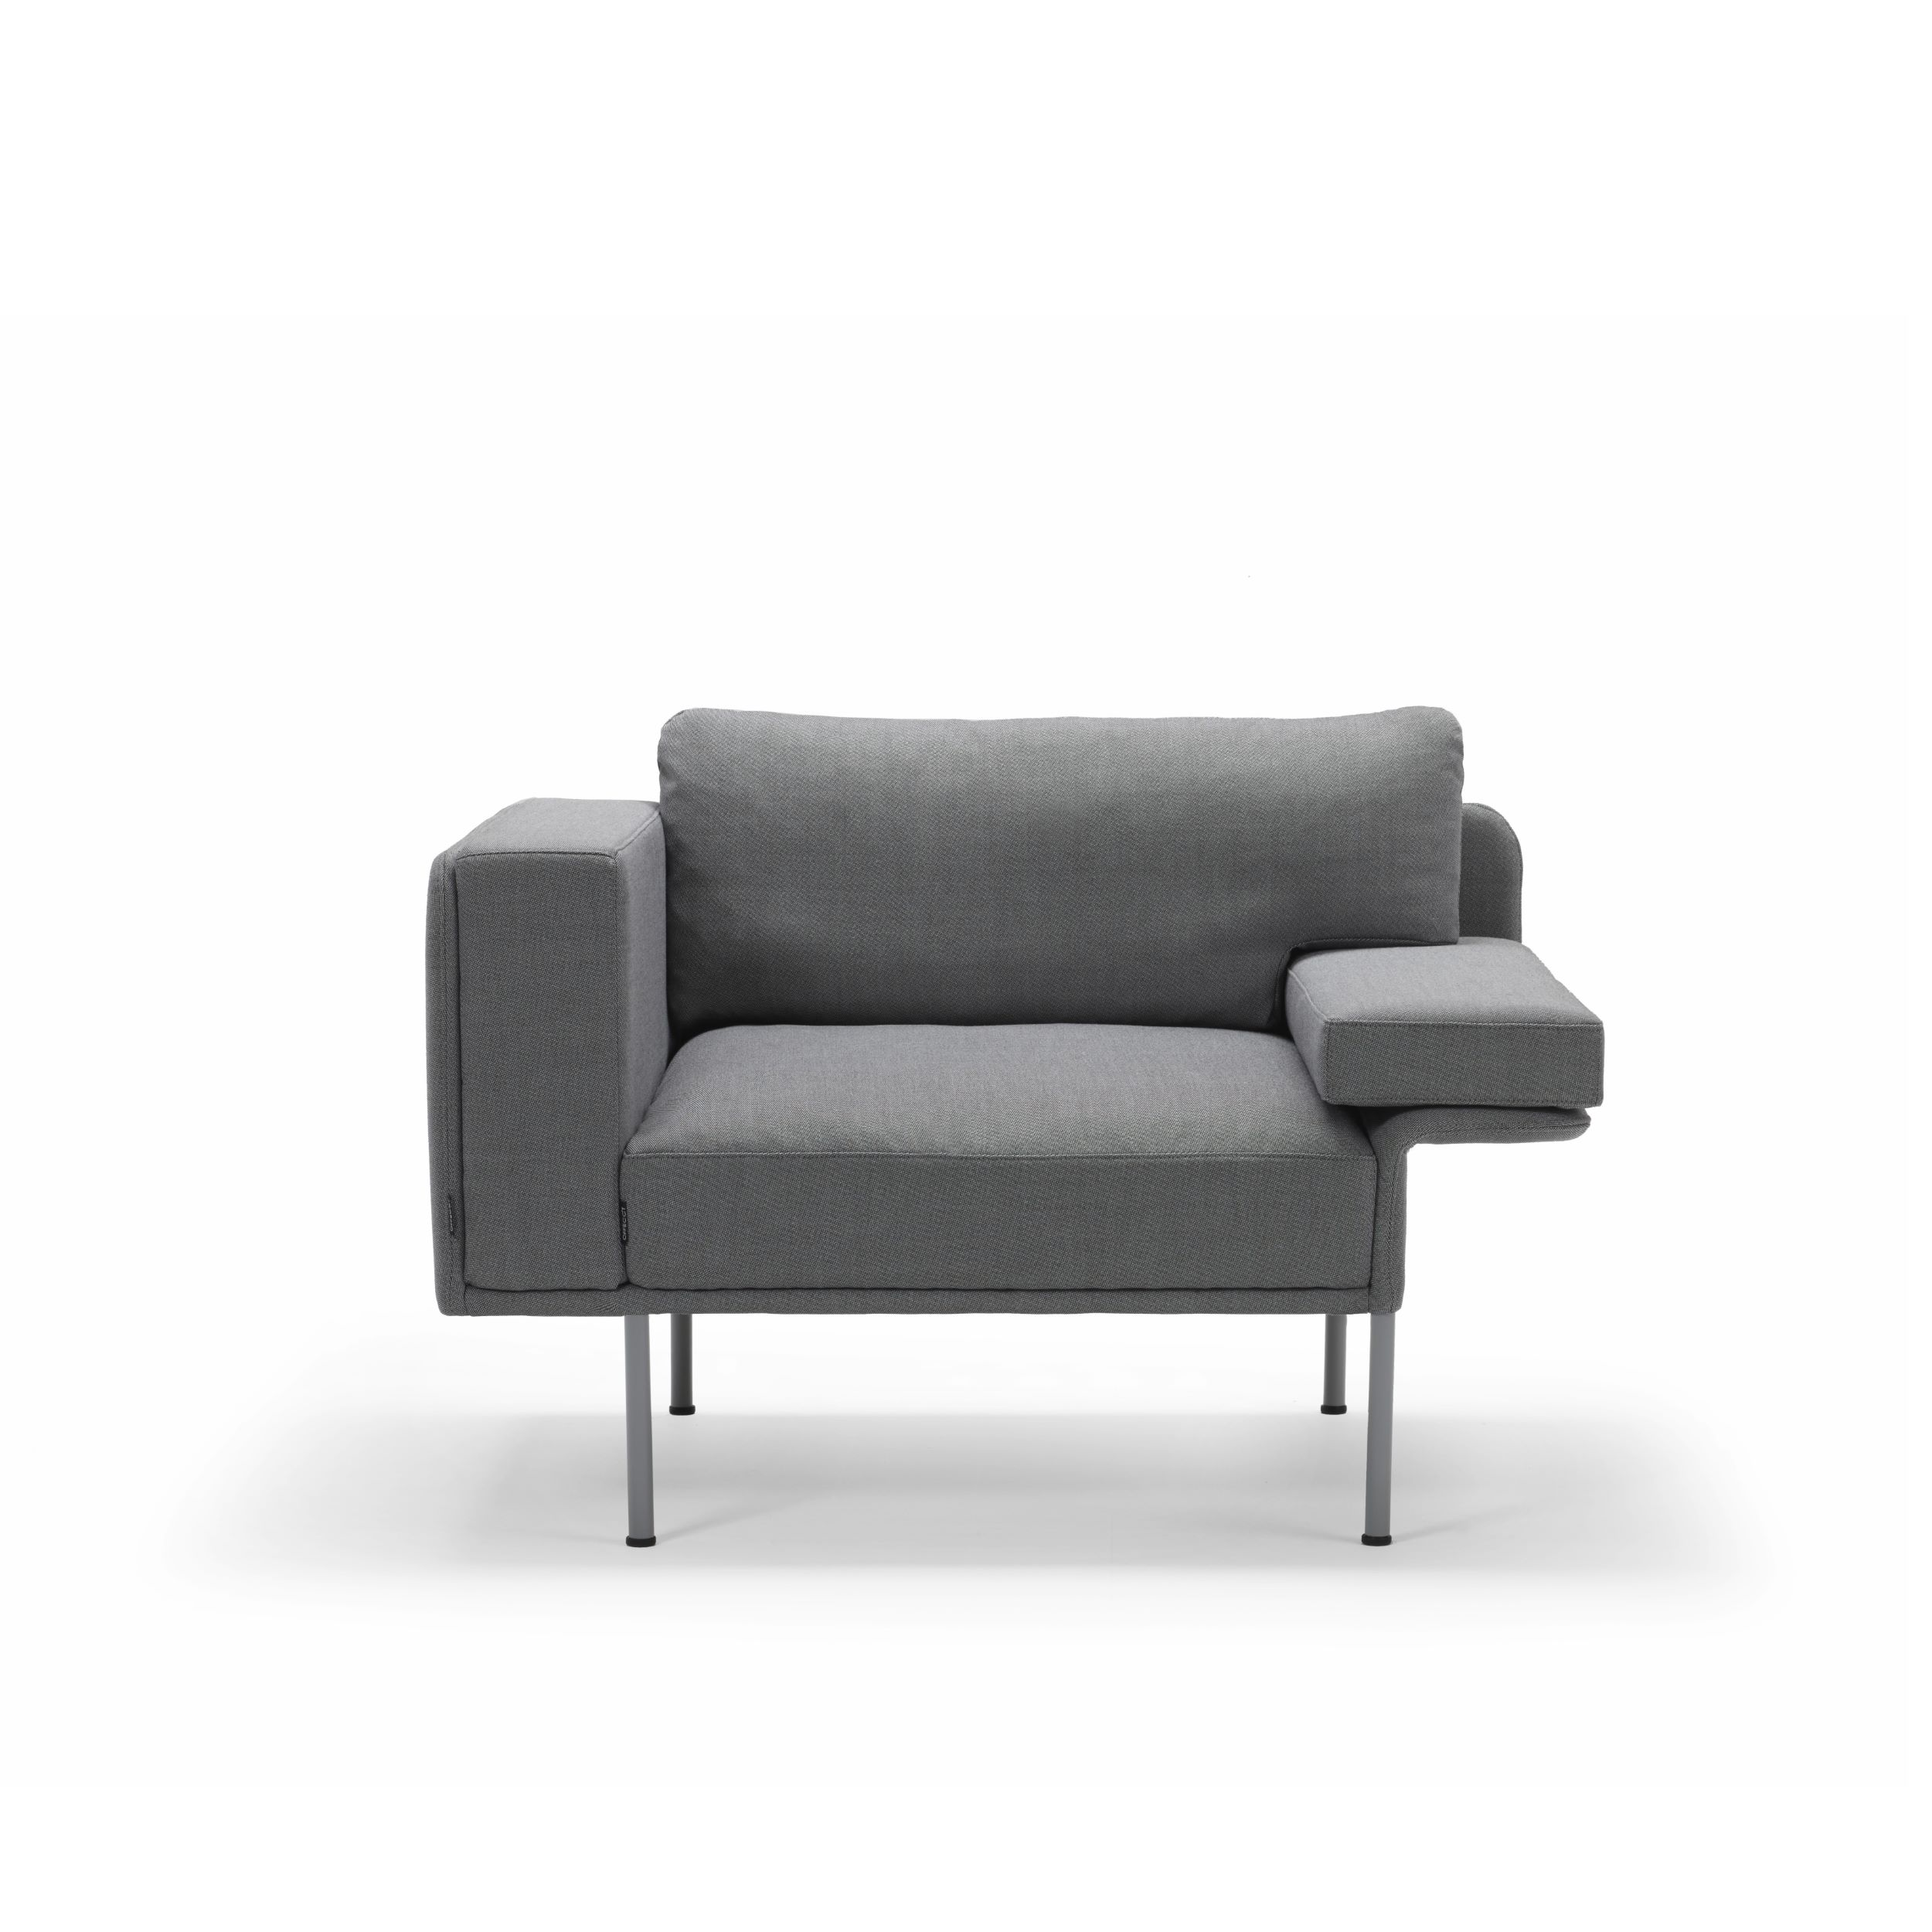 This iframe contains the logic required to handle Ajax powered Gravity Forms.  sc 1 st  Offecct & Varilounge Low Easy chair u2013 Seating by Christophe Pillet u2013 Offecct ...